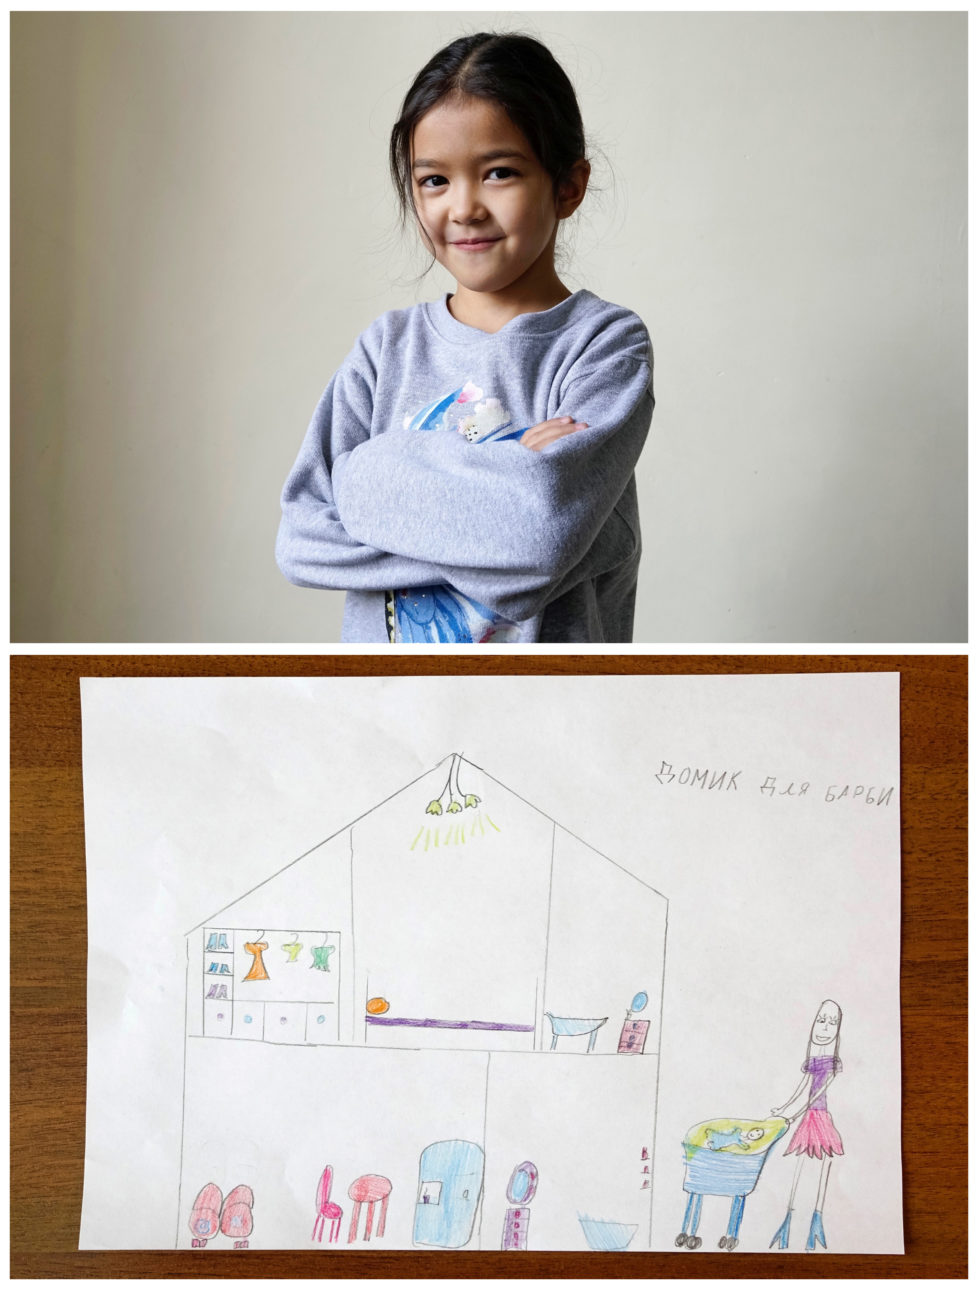 "A combination picture shows Adina Serikbayeva, 7, posing for a photograph at musical school before her piano lesson (top) and her drawing of what she wants to get for Christmas from Santa, in Almaty, Kazakhstan, November 24, 2016. Adina dreams to get a house for her Barbie doll. Writing on the drawing reads: ""House for Barbie."" Reuters photographers around the world asked children to draw what they wanted to receive from Santa for Christmas. REUTERS/Shamil Zhumatov SEARCH ""CHRISTMAS WISHES"" FOR THIS STORY. SEARCH ""WIDER IMAGE"" FOR ALL STORIES. - RTSV35X"